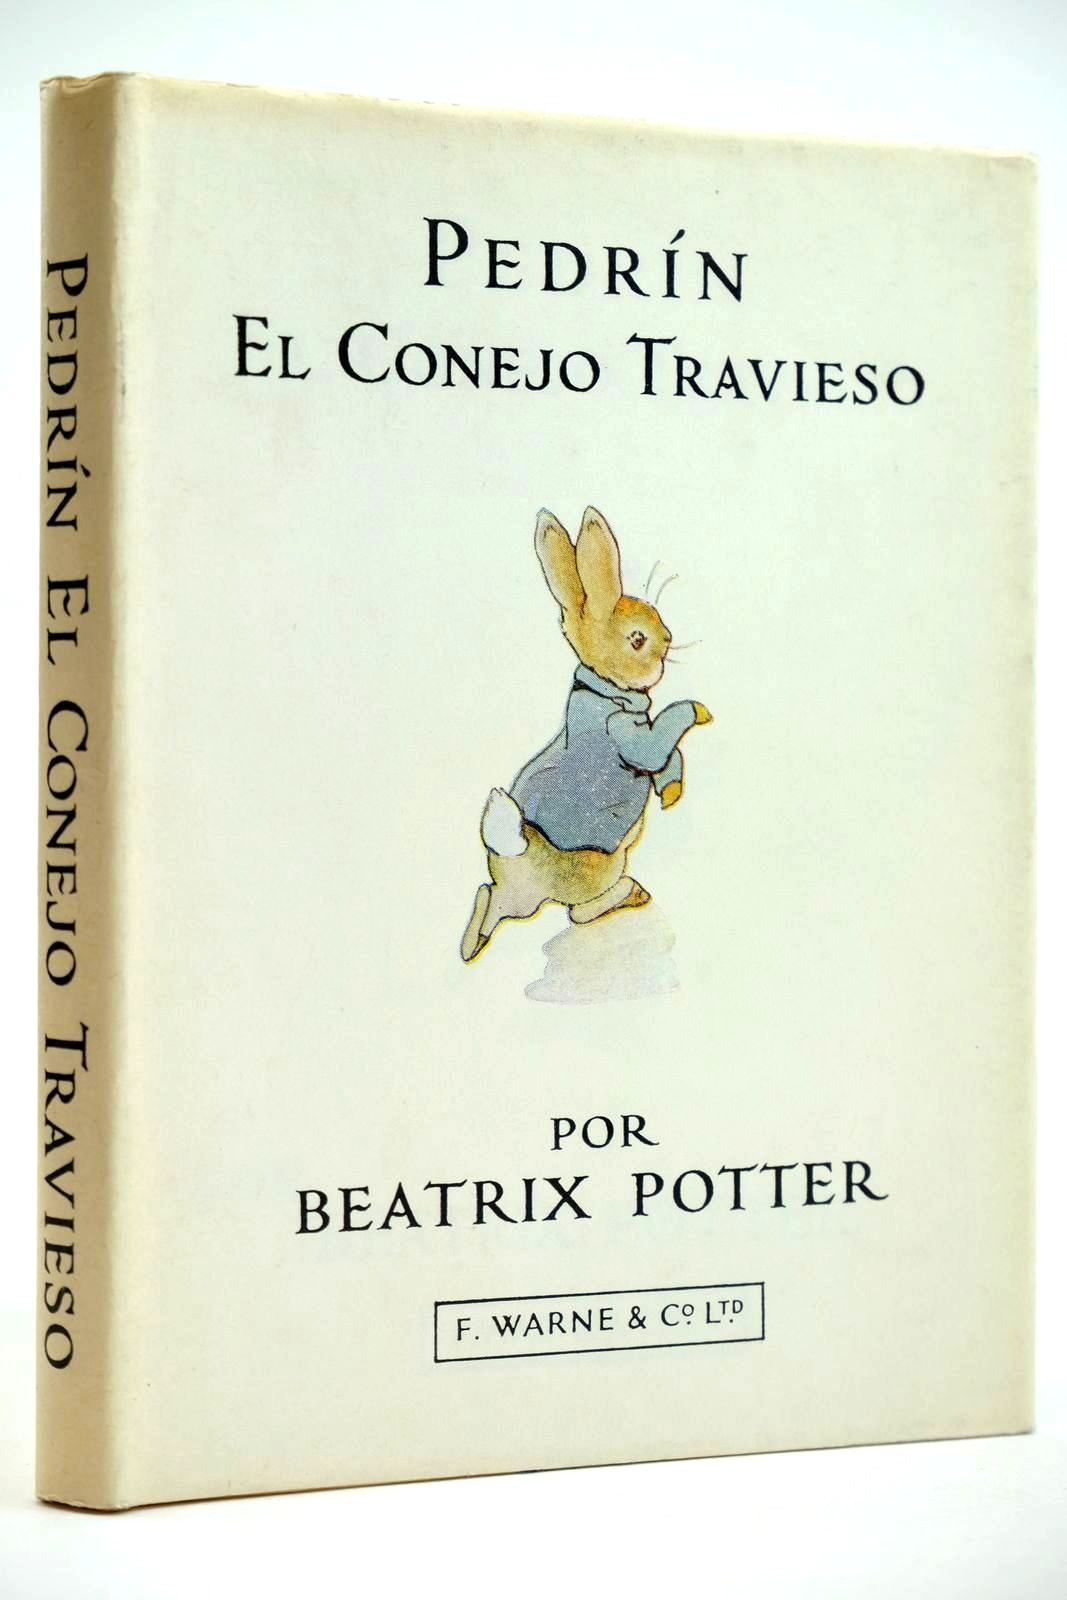 Photo of PEDRIN EL CONEJO TRAVIESO written by Potter, Beatrix illustrated by Potter, Beatrix published by Frederick Warne & Co Ltd. (STOCK CODE: 2132075)  for sale by Stella & Rose's Books